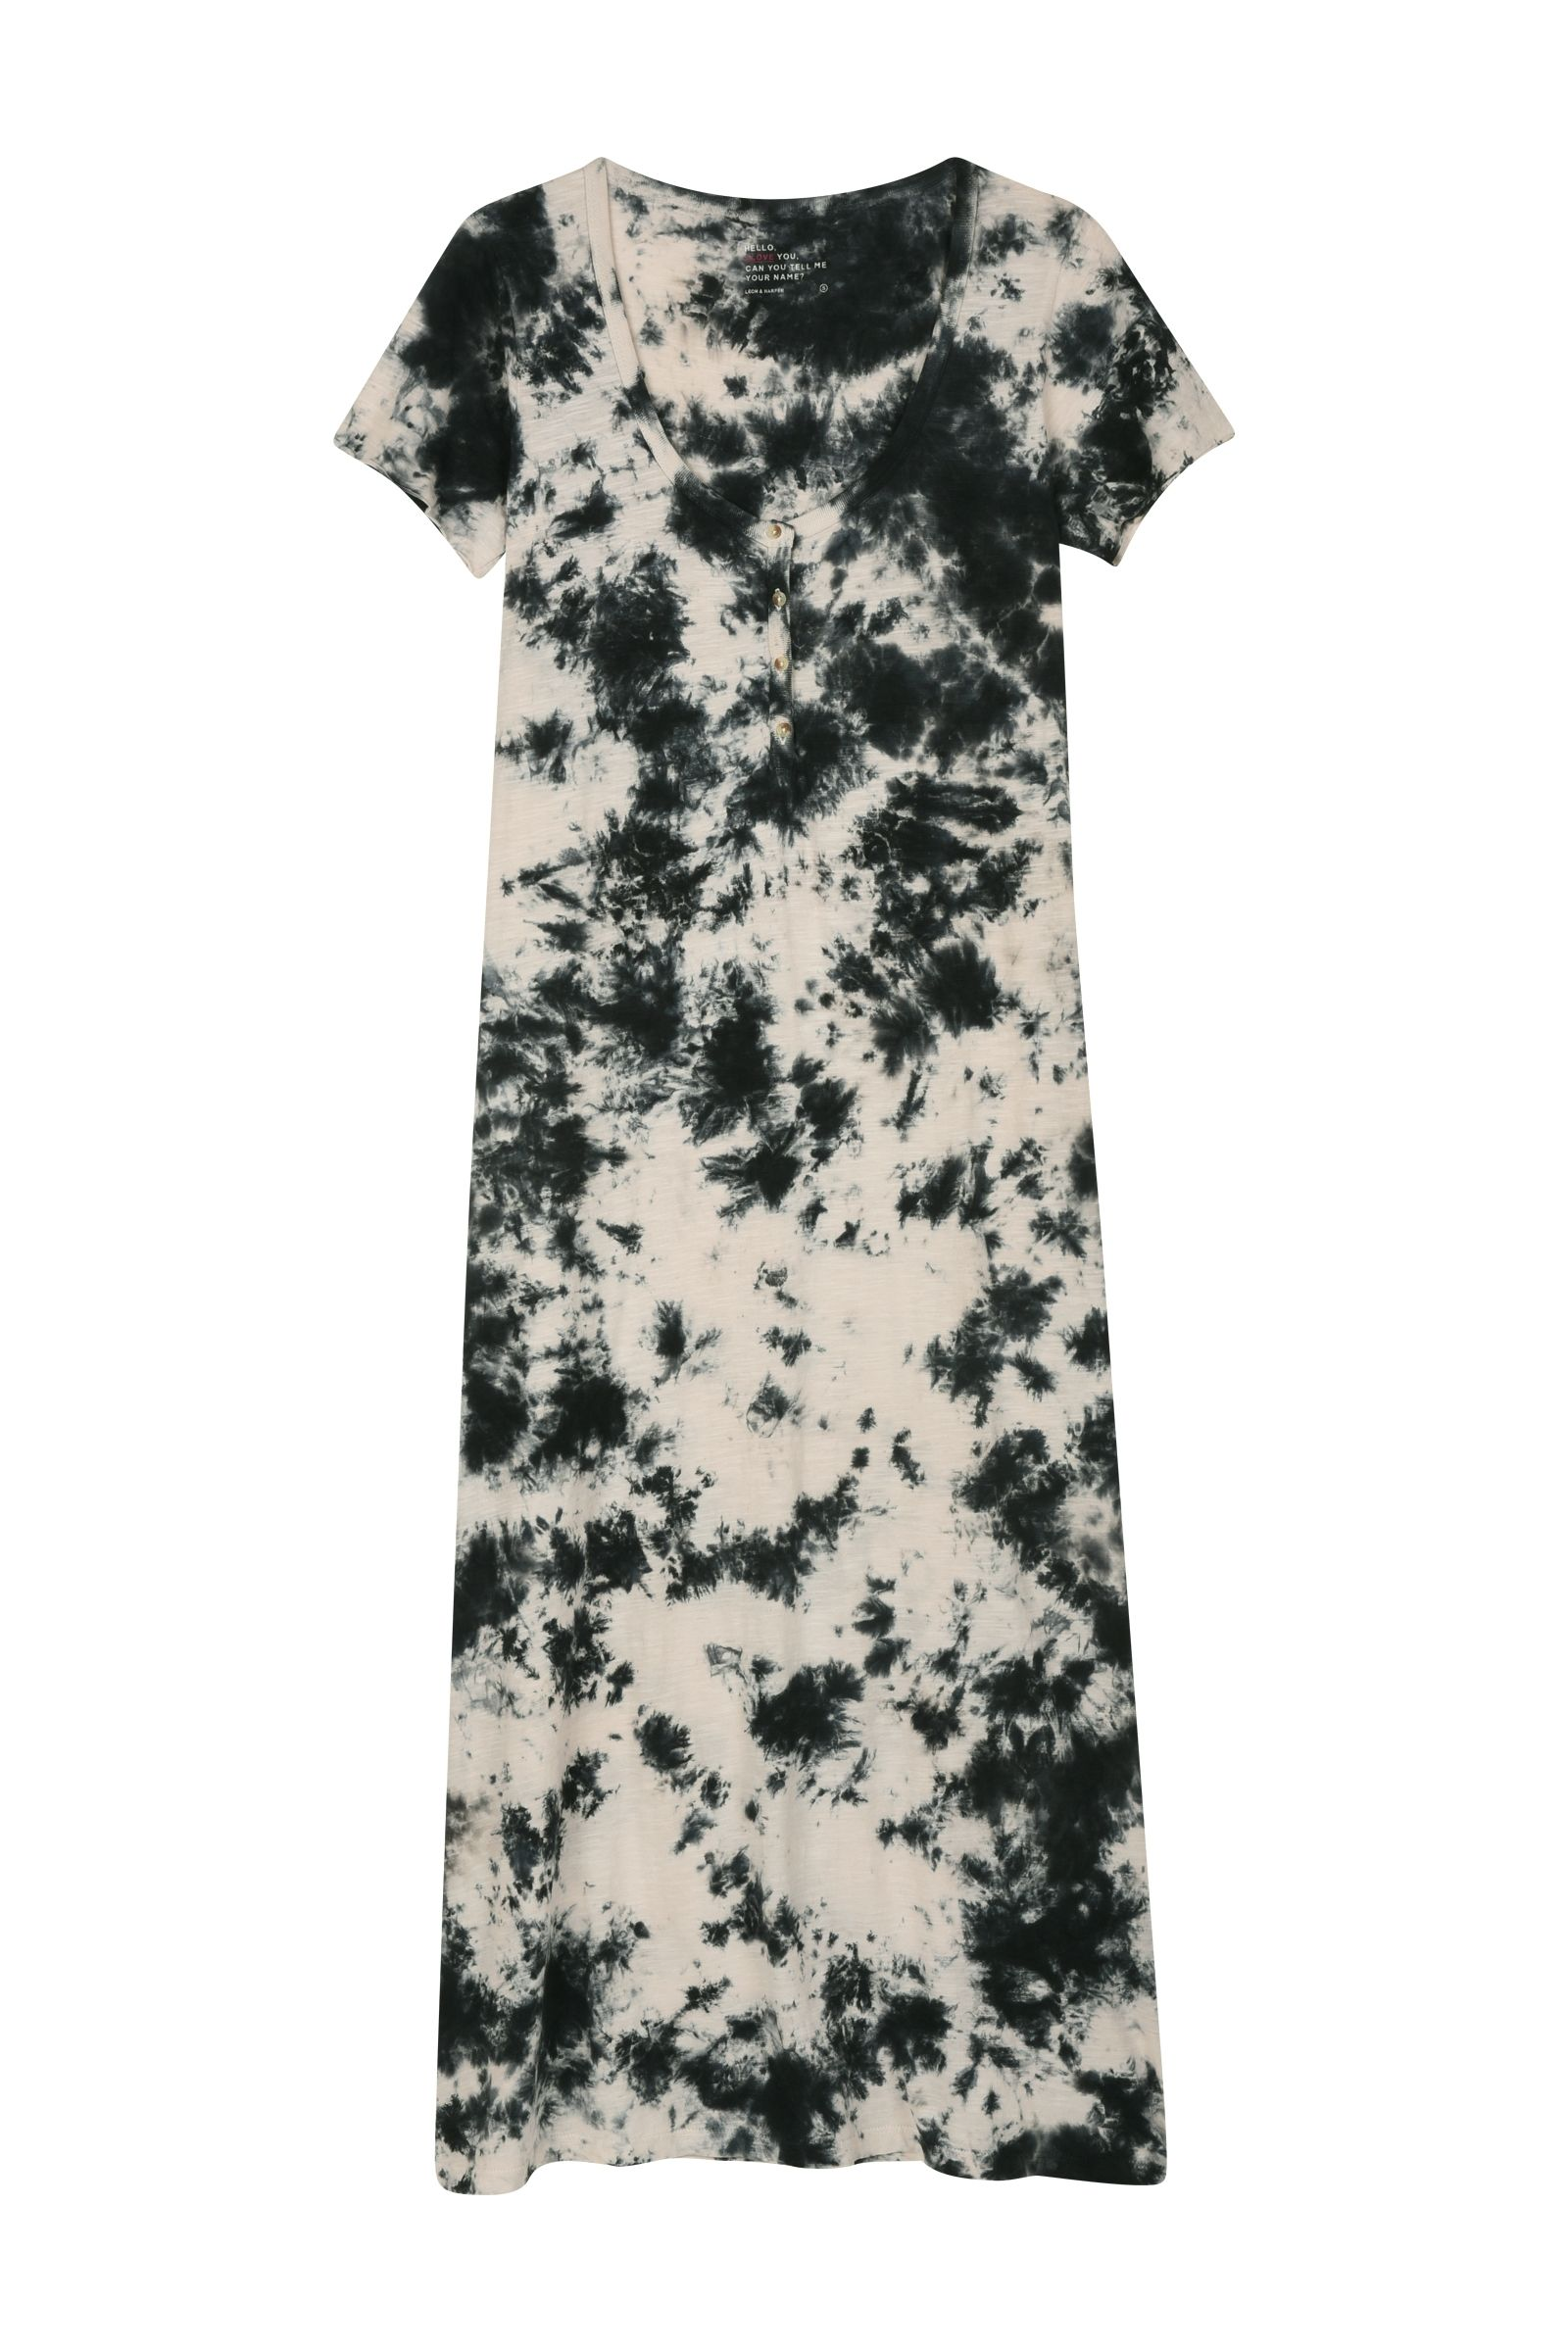 Image 4 du produit Renzo Tie and Dye Dress